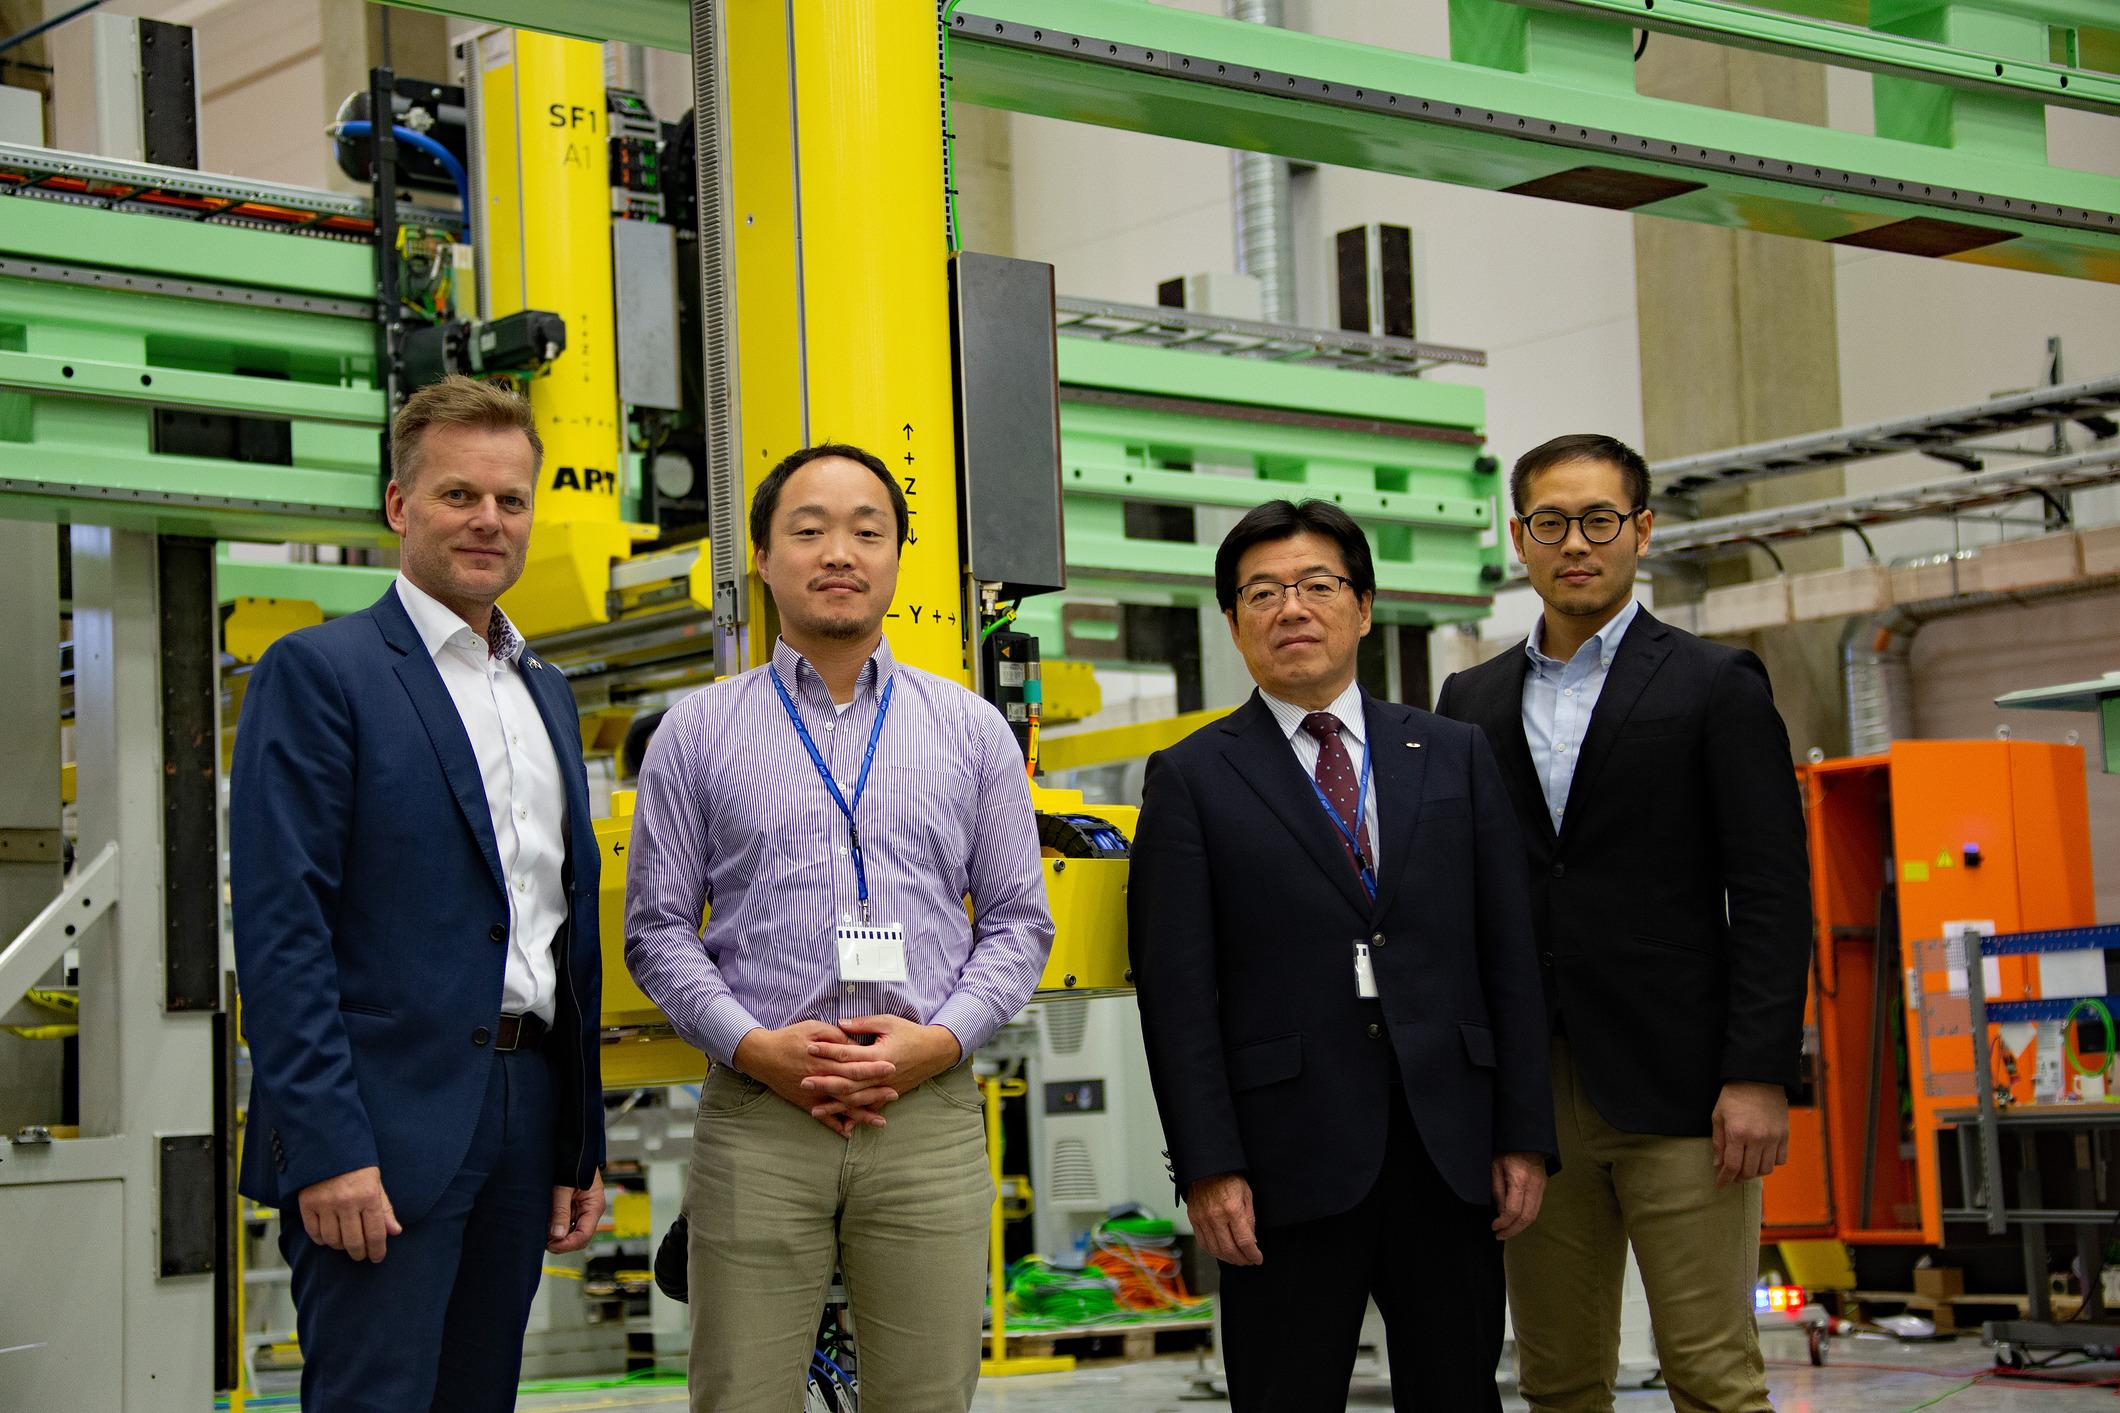 Unipres visits AP&T in Ulricehamn, Sweden. Tsutomu Serizawa and Ryoji  Maeda from Unipres in the middle, with Peter Robisch and Yuki Yoshikawa from AP&T on either side.